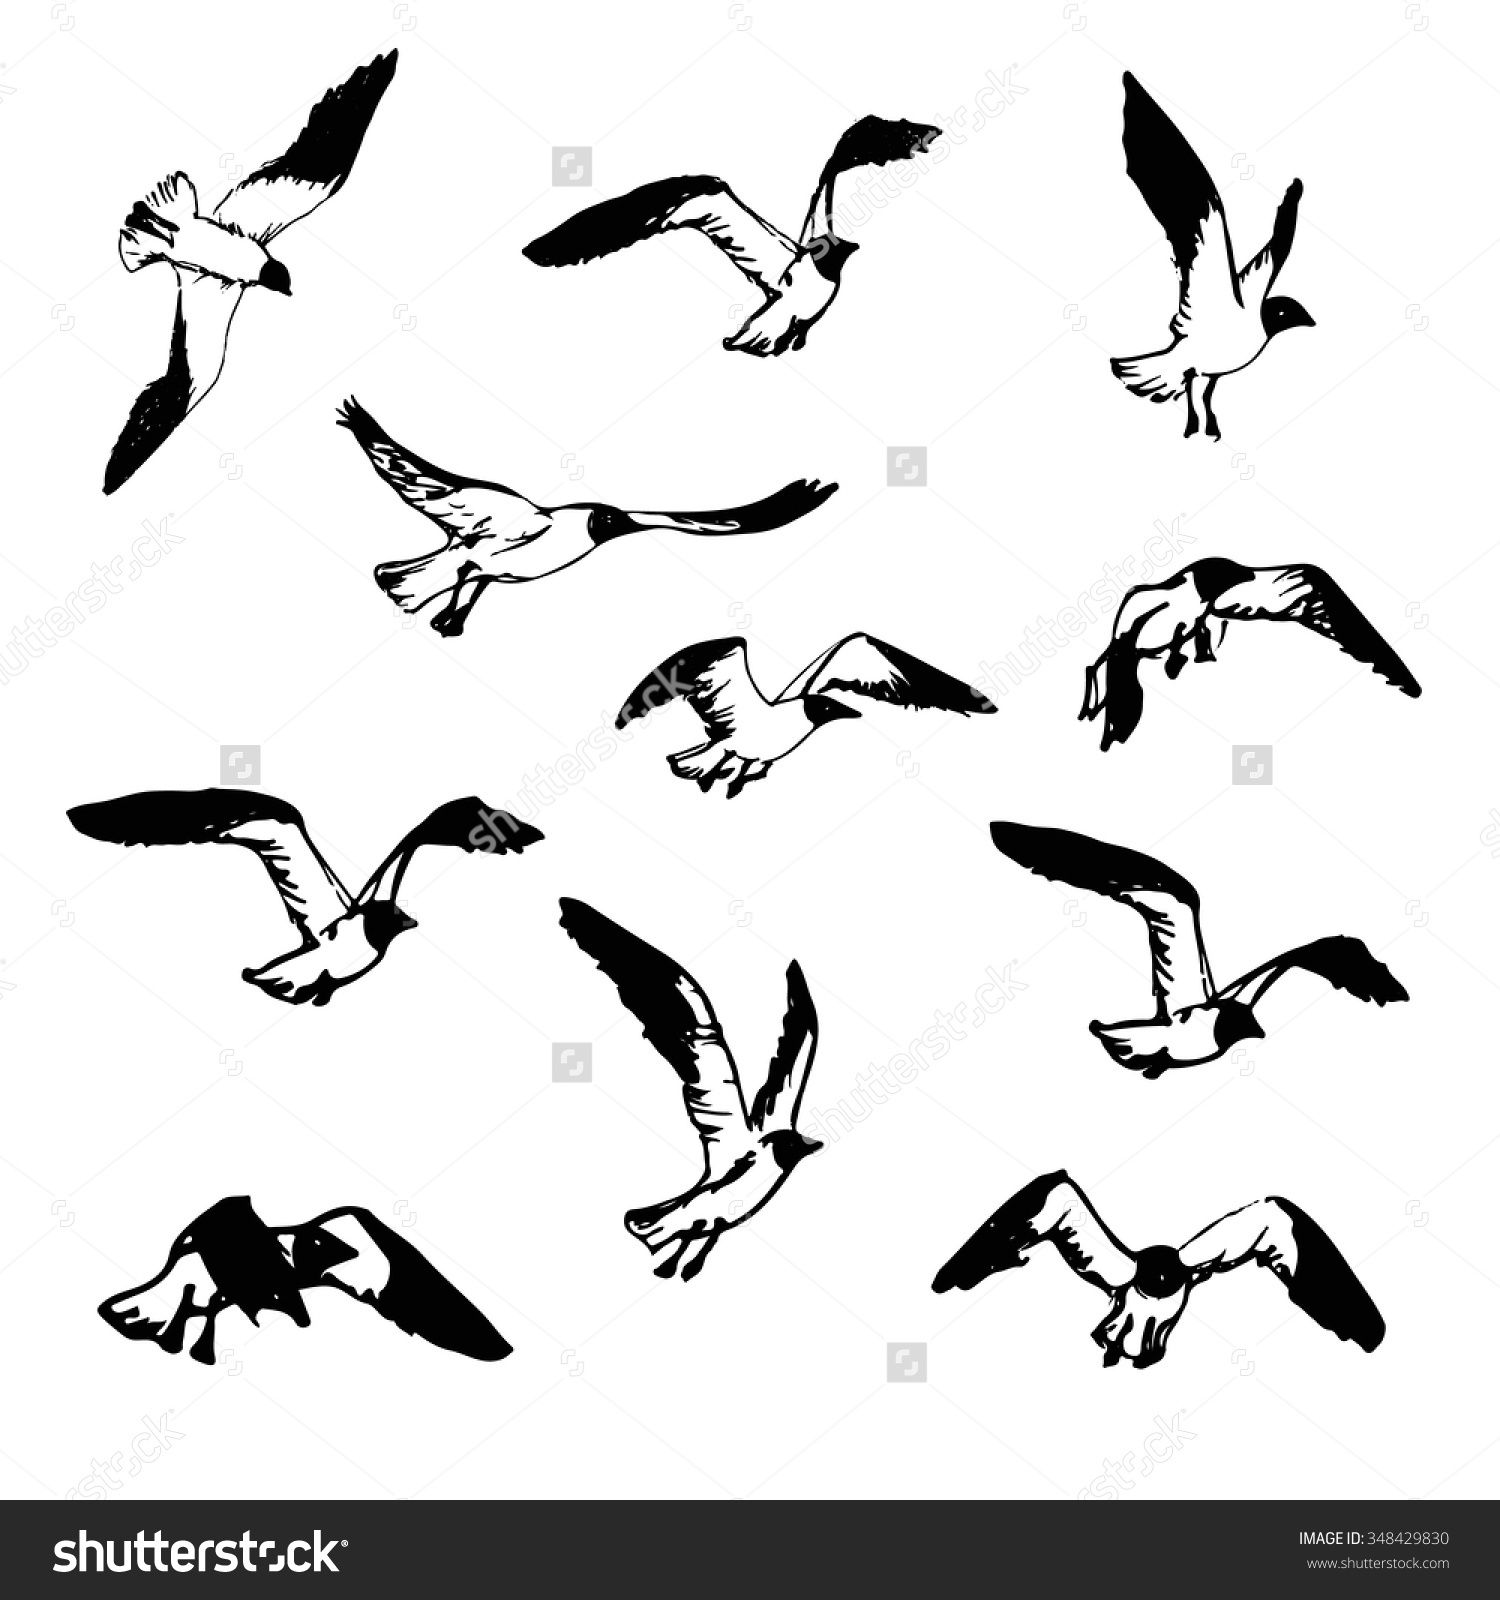 Hand Drawn Flying Seagulls Black And White Illustration